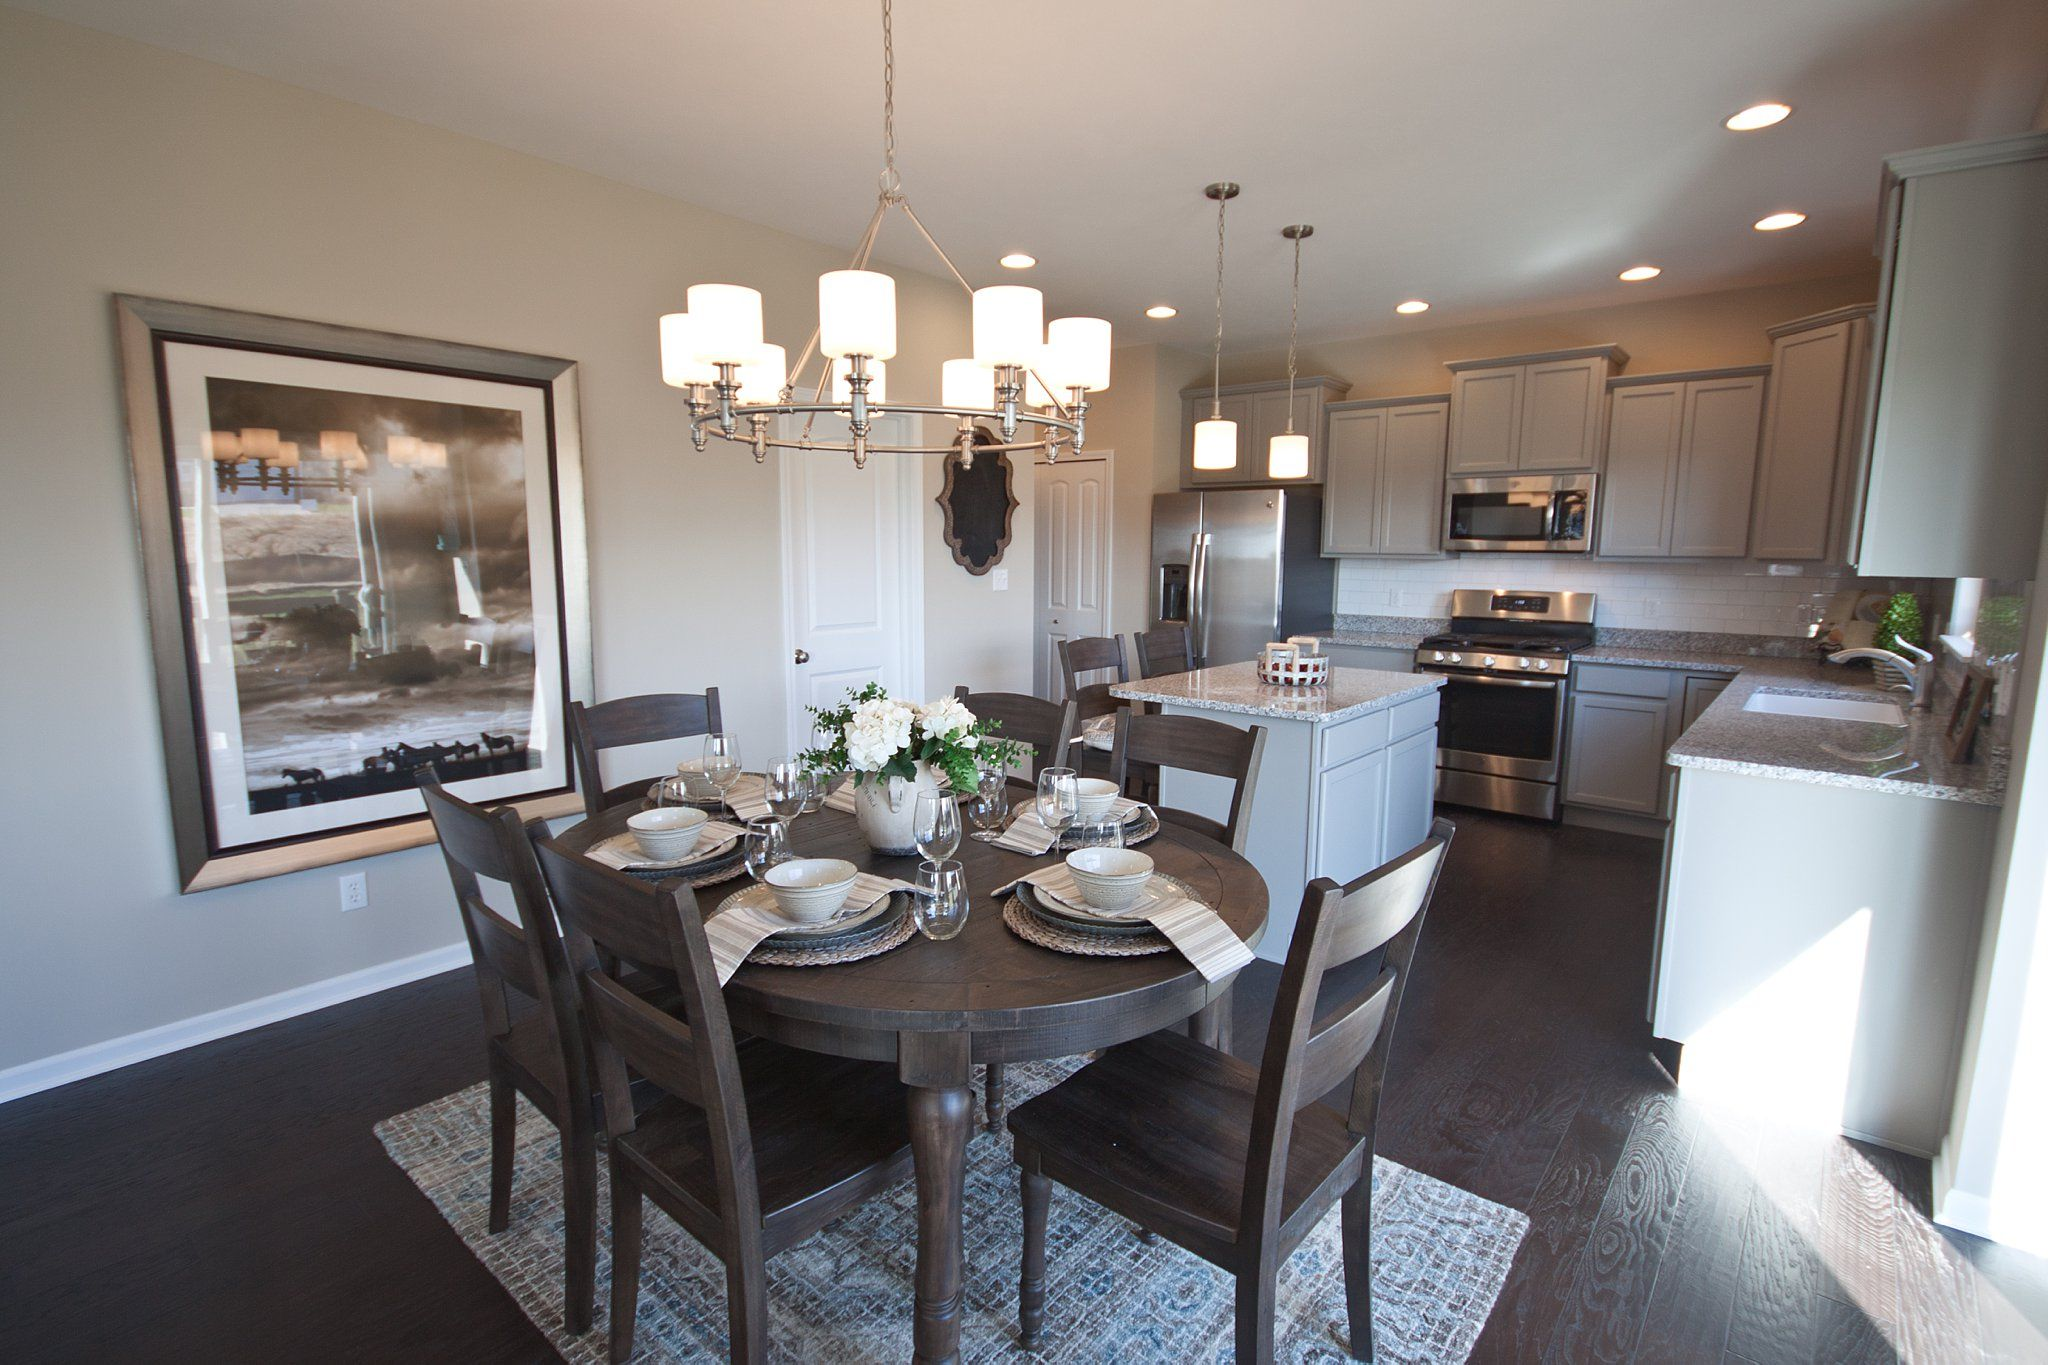 Kitchen featured in the Baymont By Olthof Homes in Gary, IN